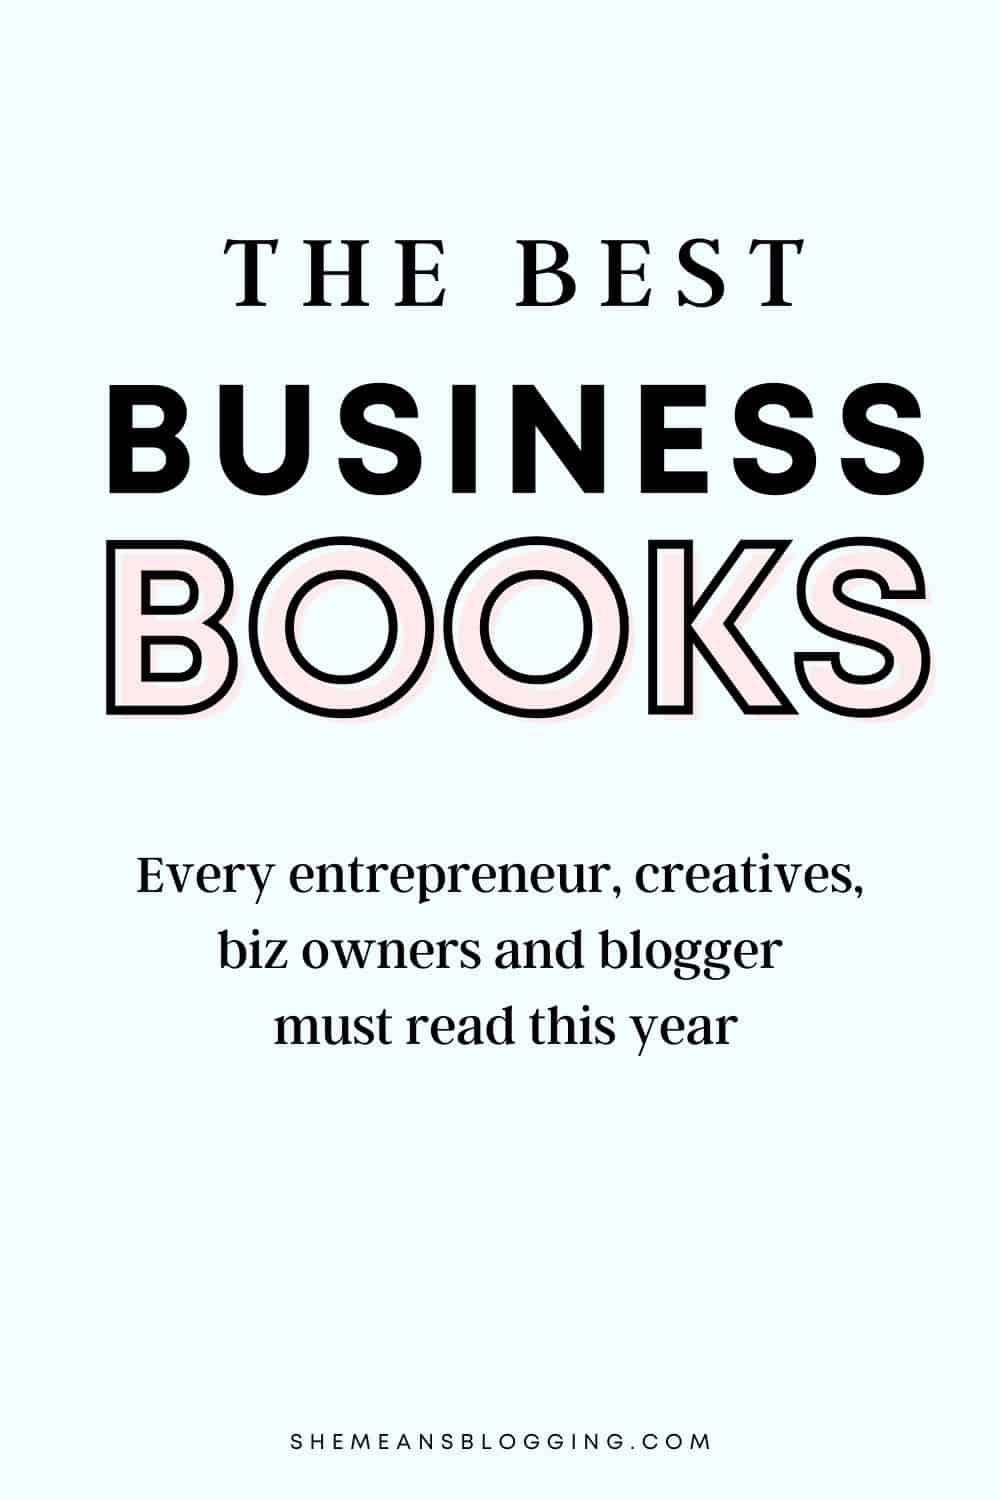 The best business books for entrepreneurs to read this year! Check out most popular business books that will change your business mindset and help you grow a profitable business. Best books for inspiration. Life changing books for entrepreneurs, bloggers, freelancers, marketers etc.